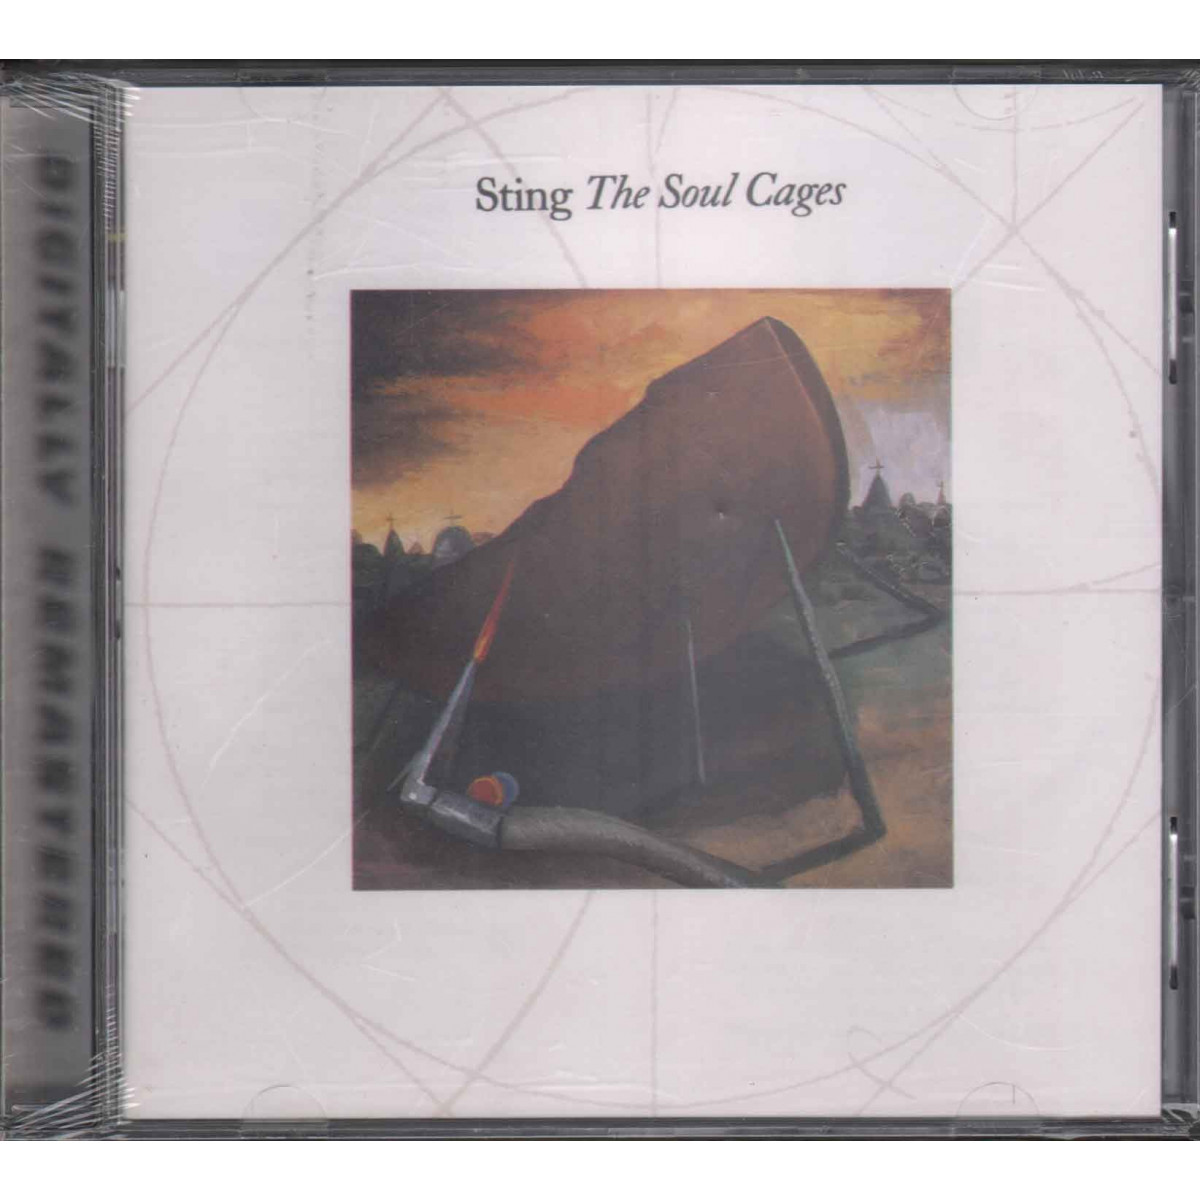 Sting CD The Soul Cages / A&M Records 540 996 2 The Sting Remasters Sigillato